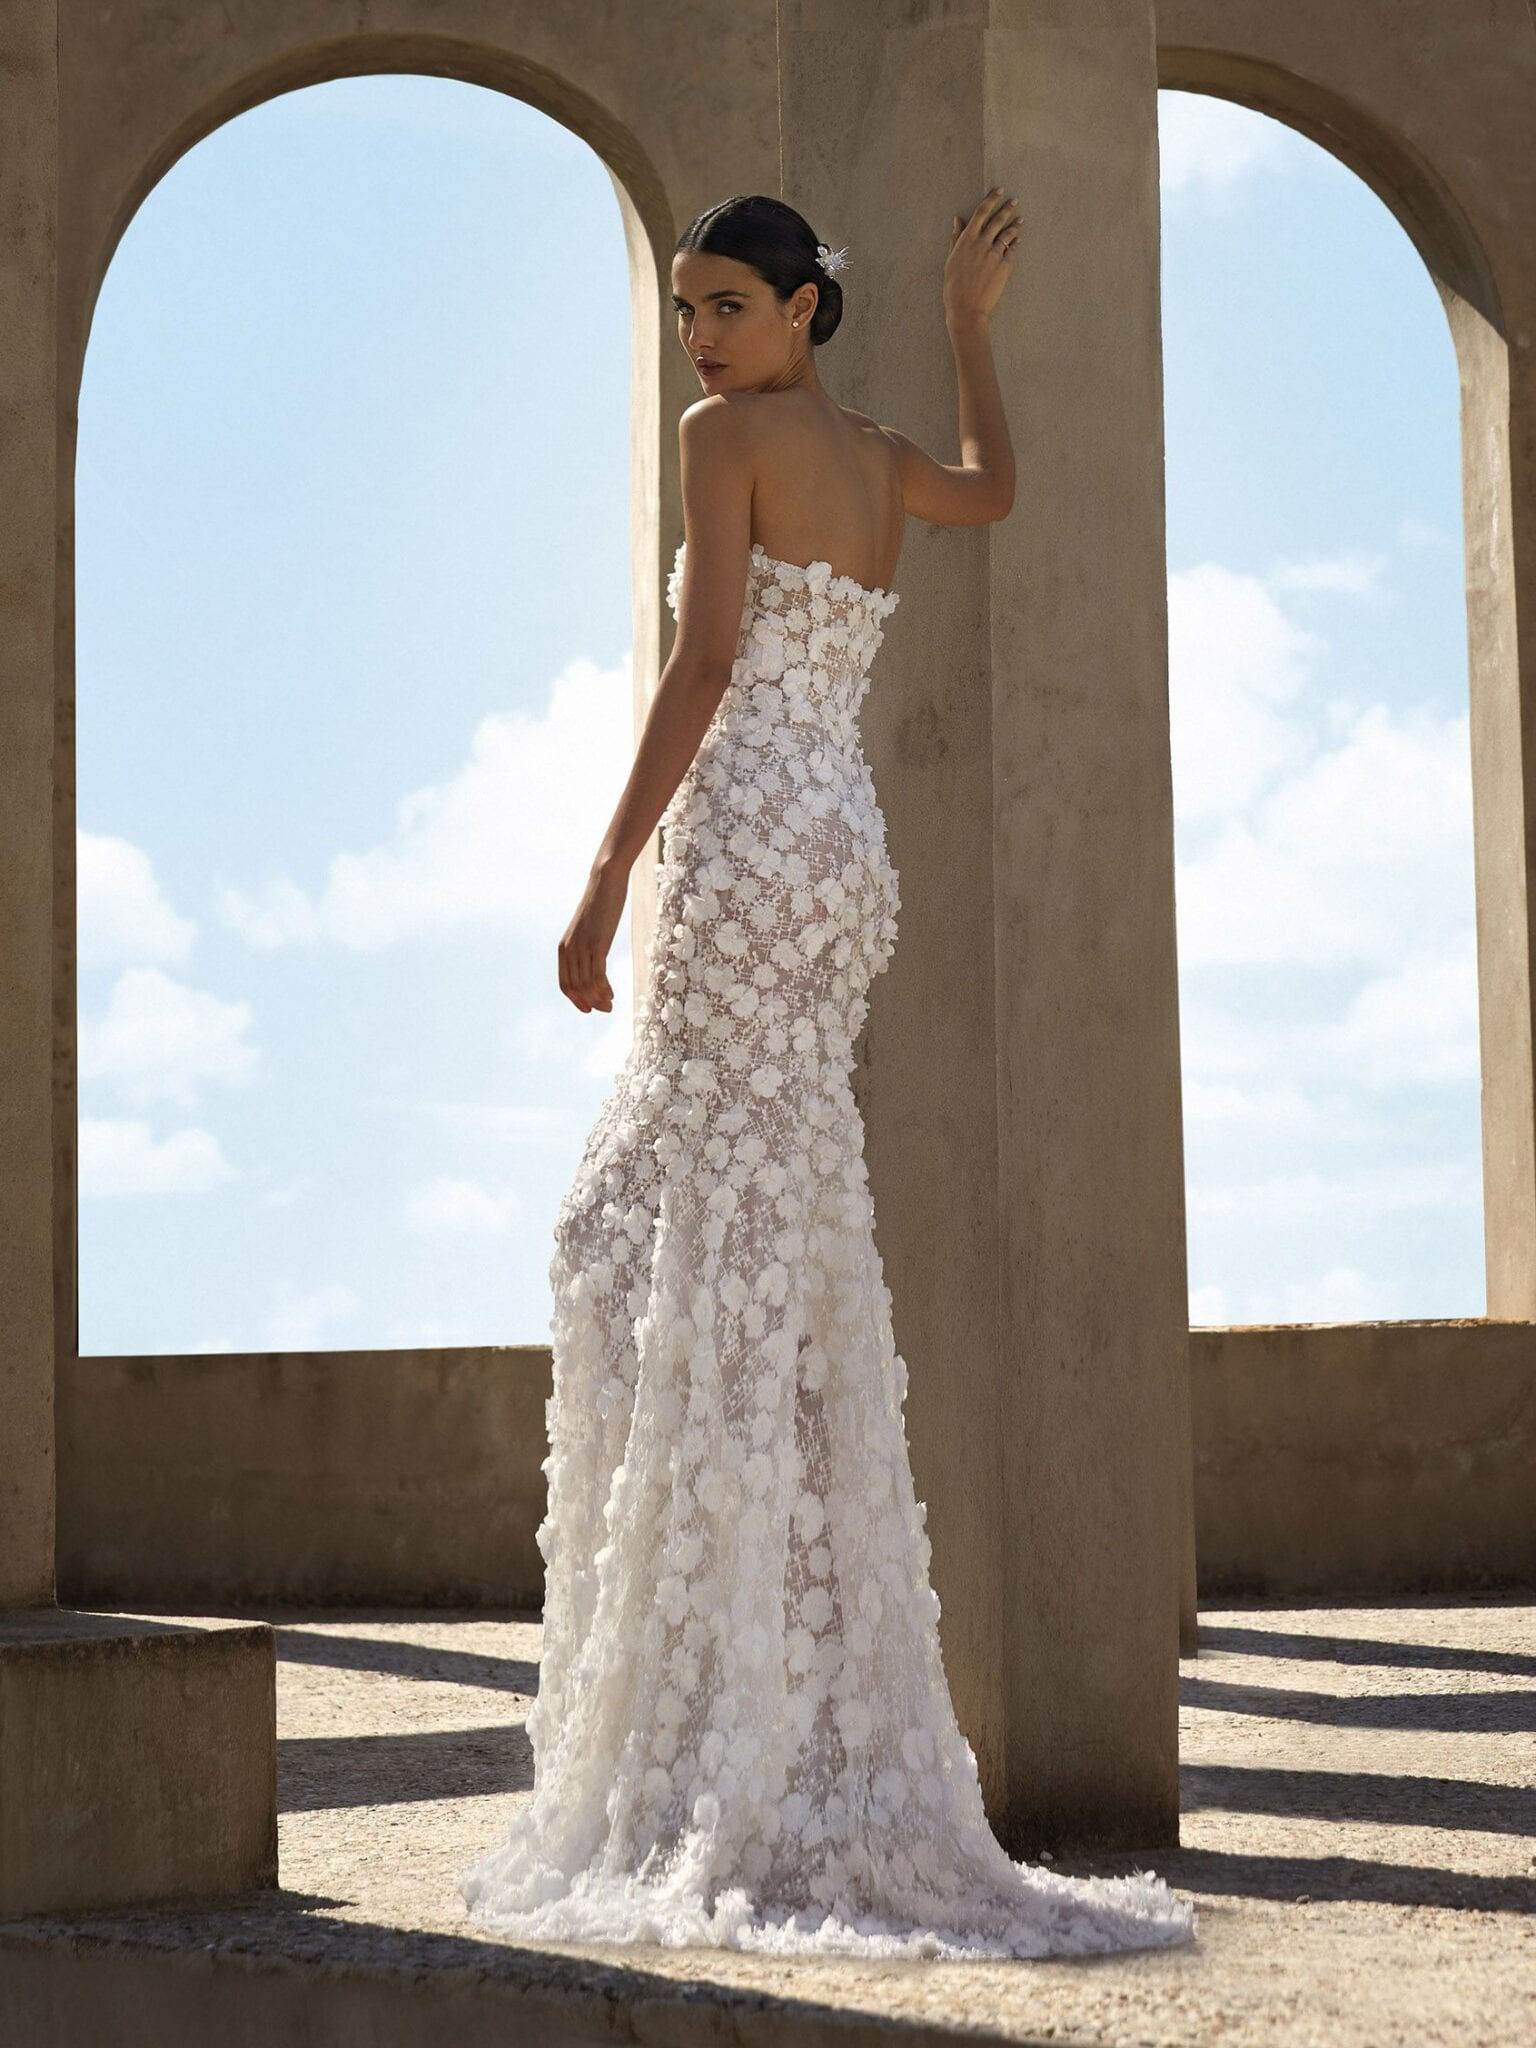 Nadine Pronovias Atelier 2021 3D embellished Mermaid Wedding Dress with Off the Shoulder Ruffle Sleeves